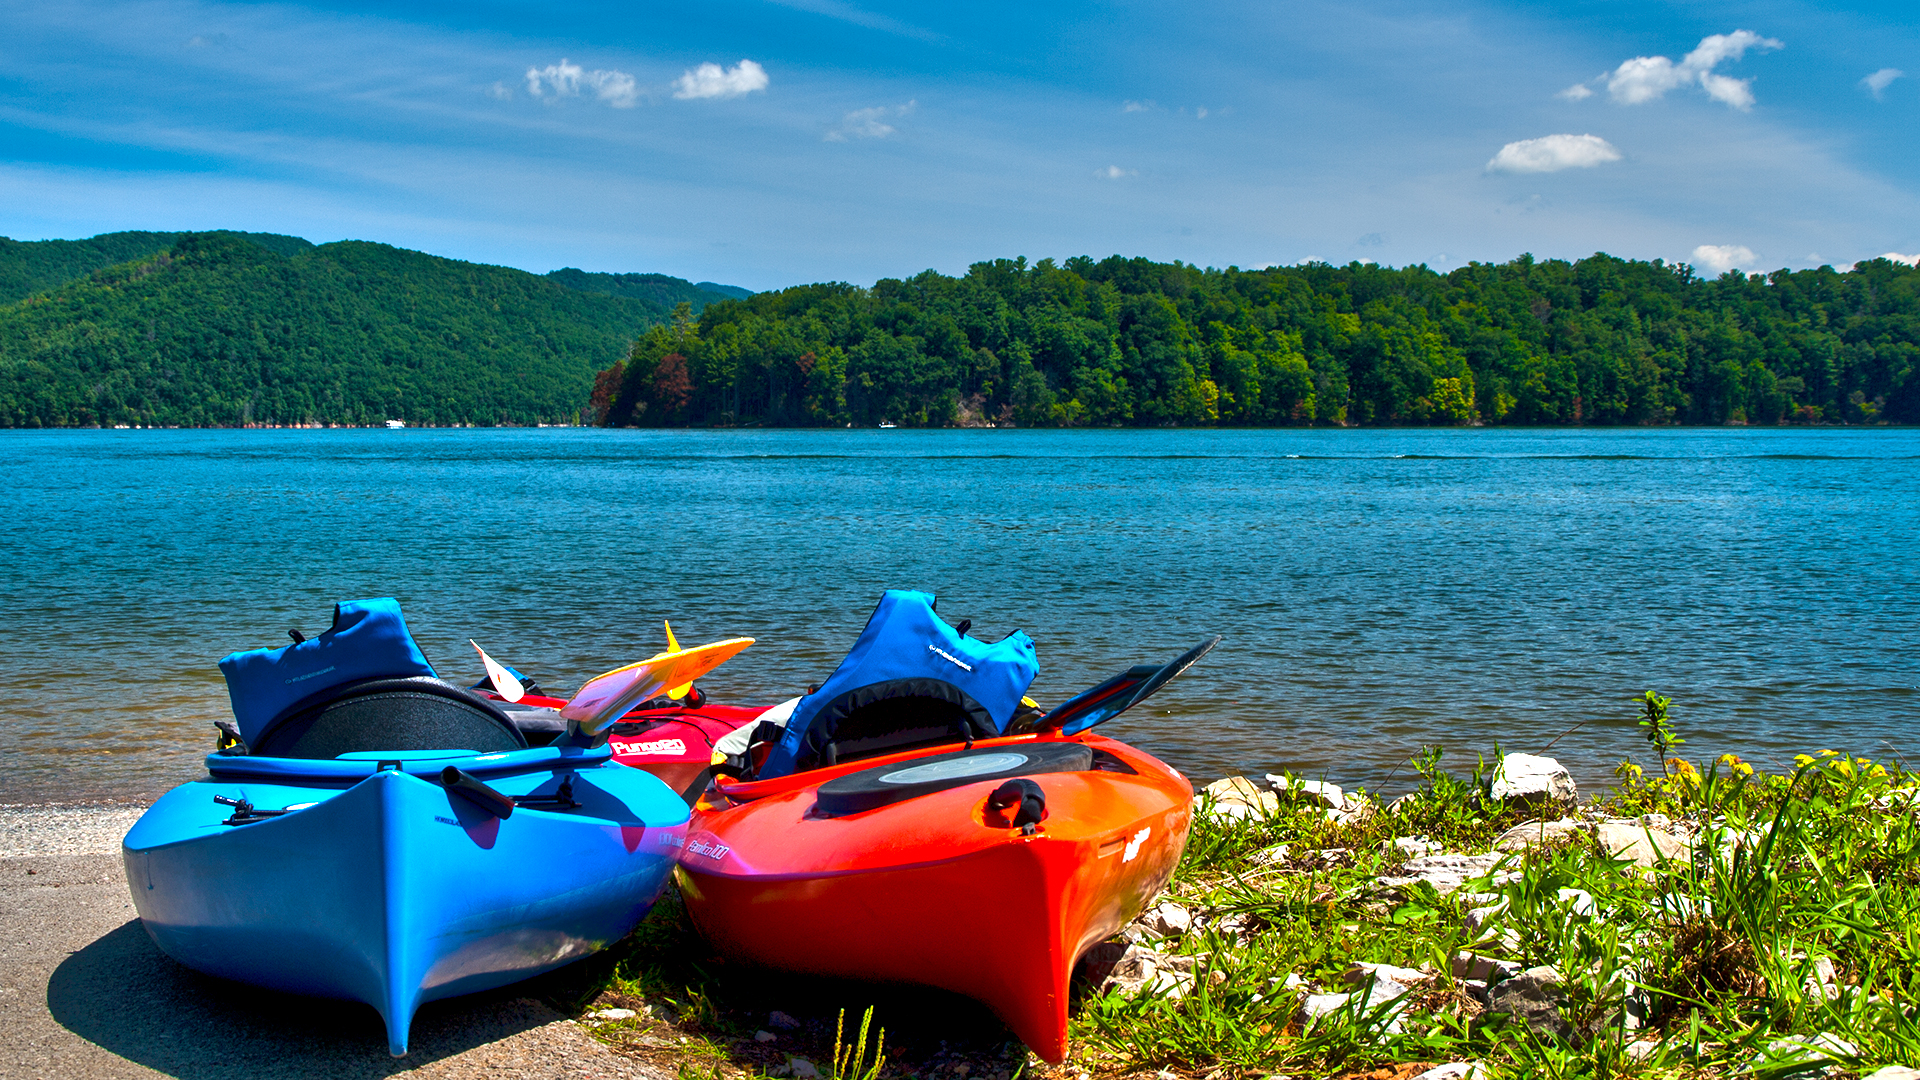 Kayaking at Watauga Lake